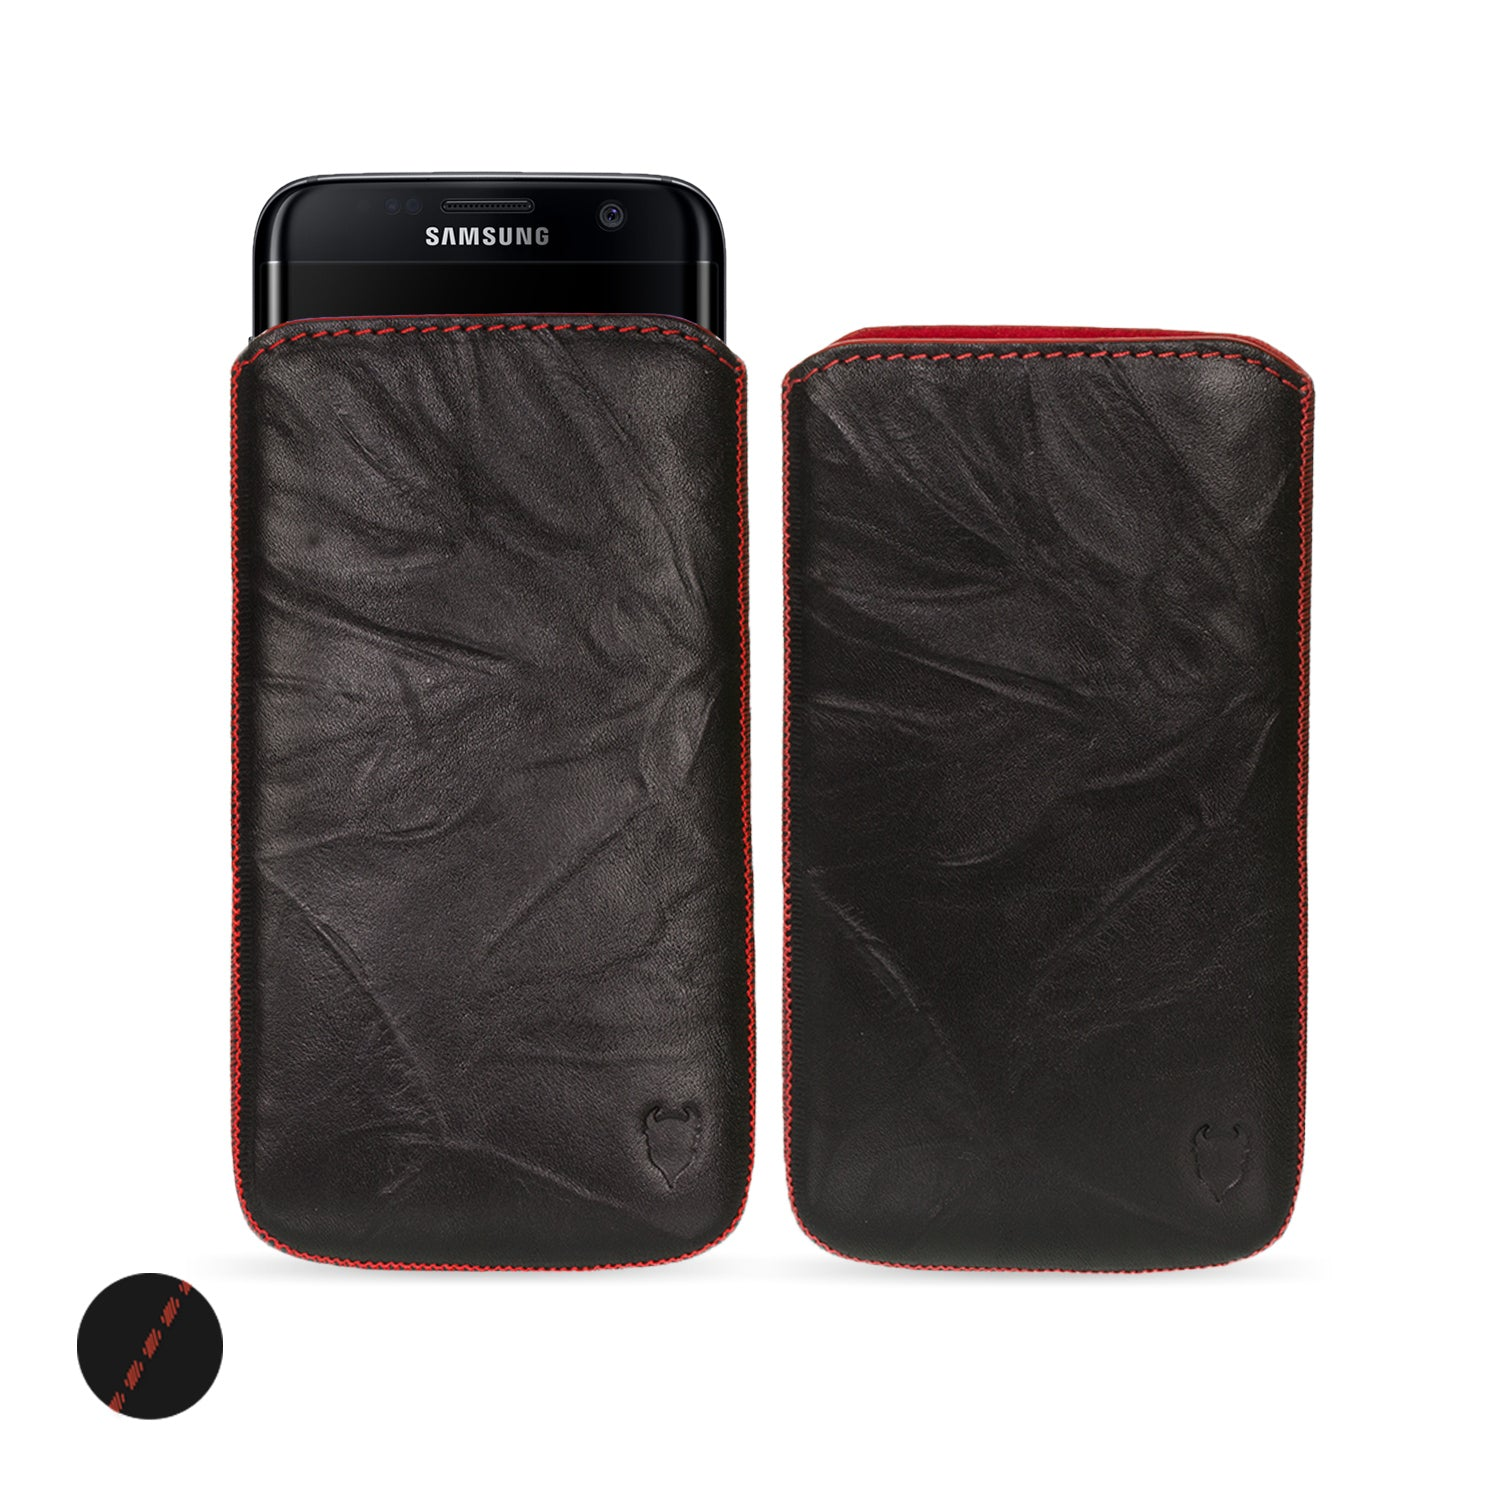 check out f93f7 7bc9a Samsung Galaxy S9 Genuine European Leather Pouch Case | Artisanpouch